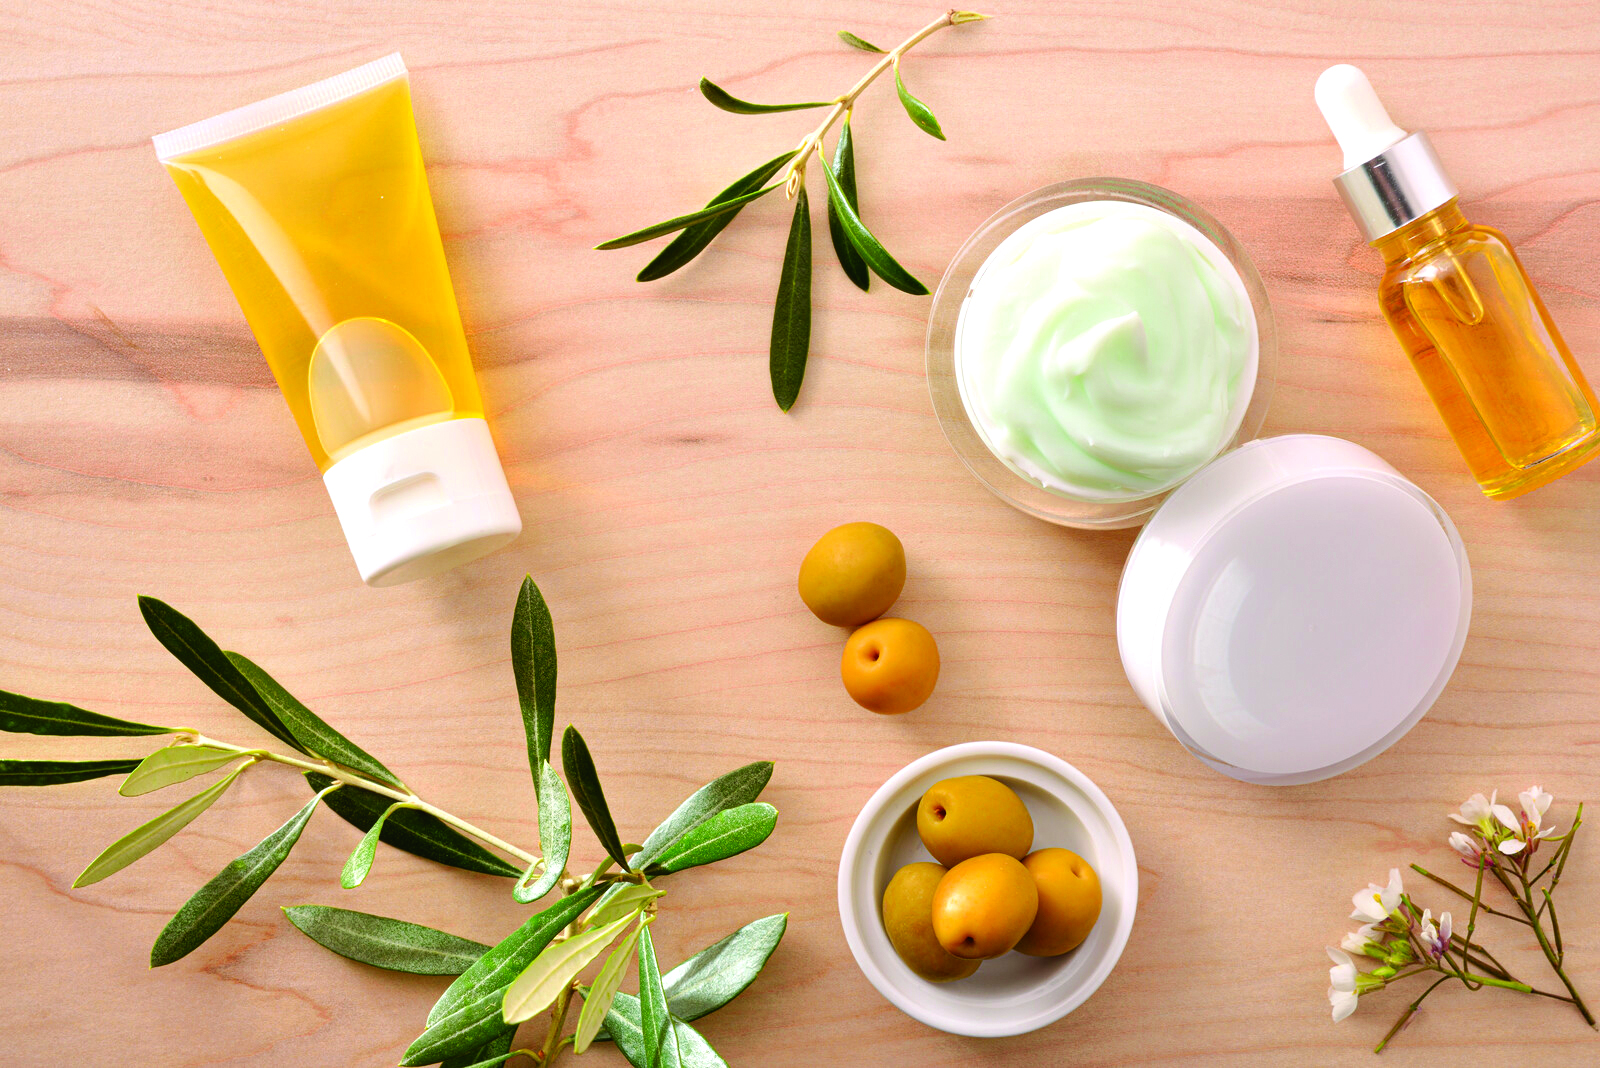 skincare products, olives and rosemary